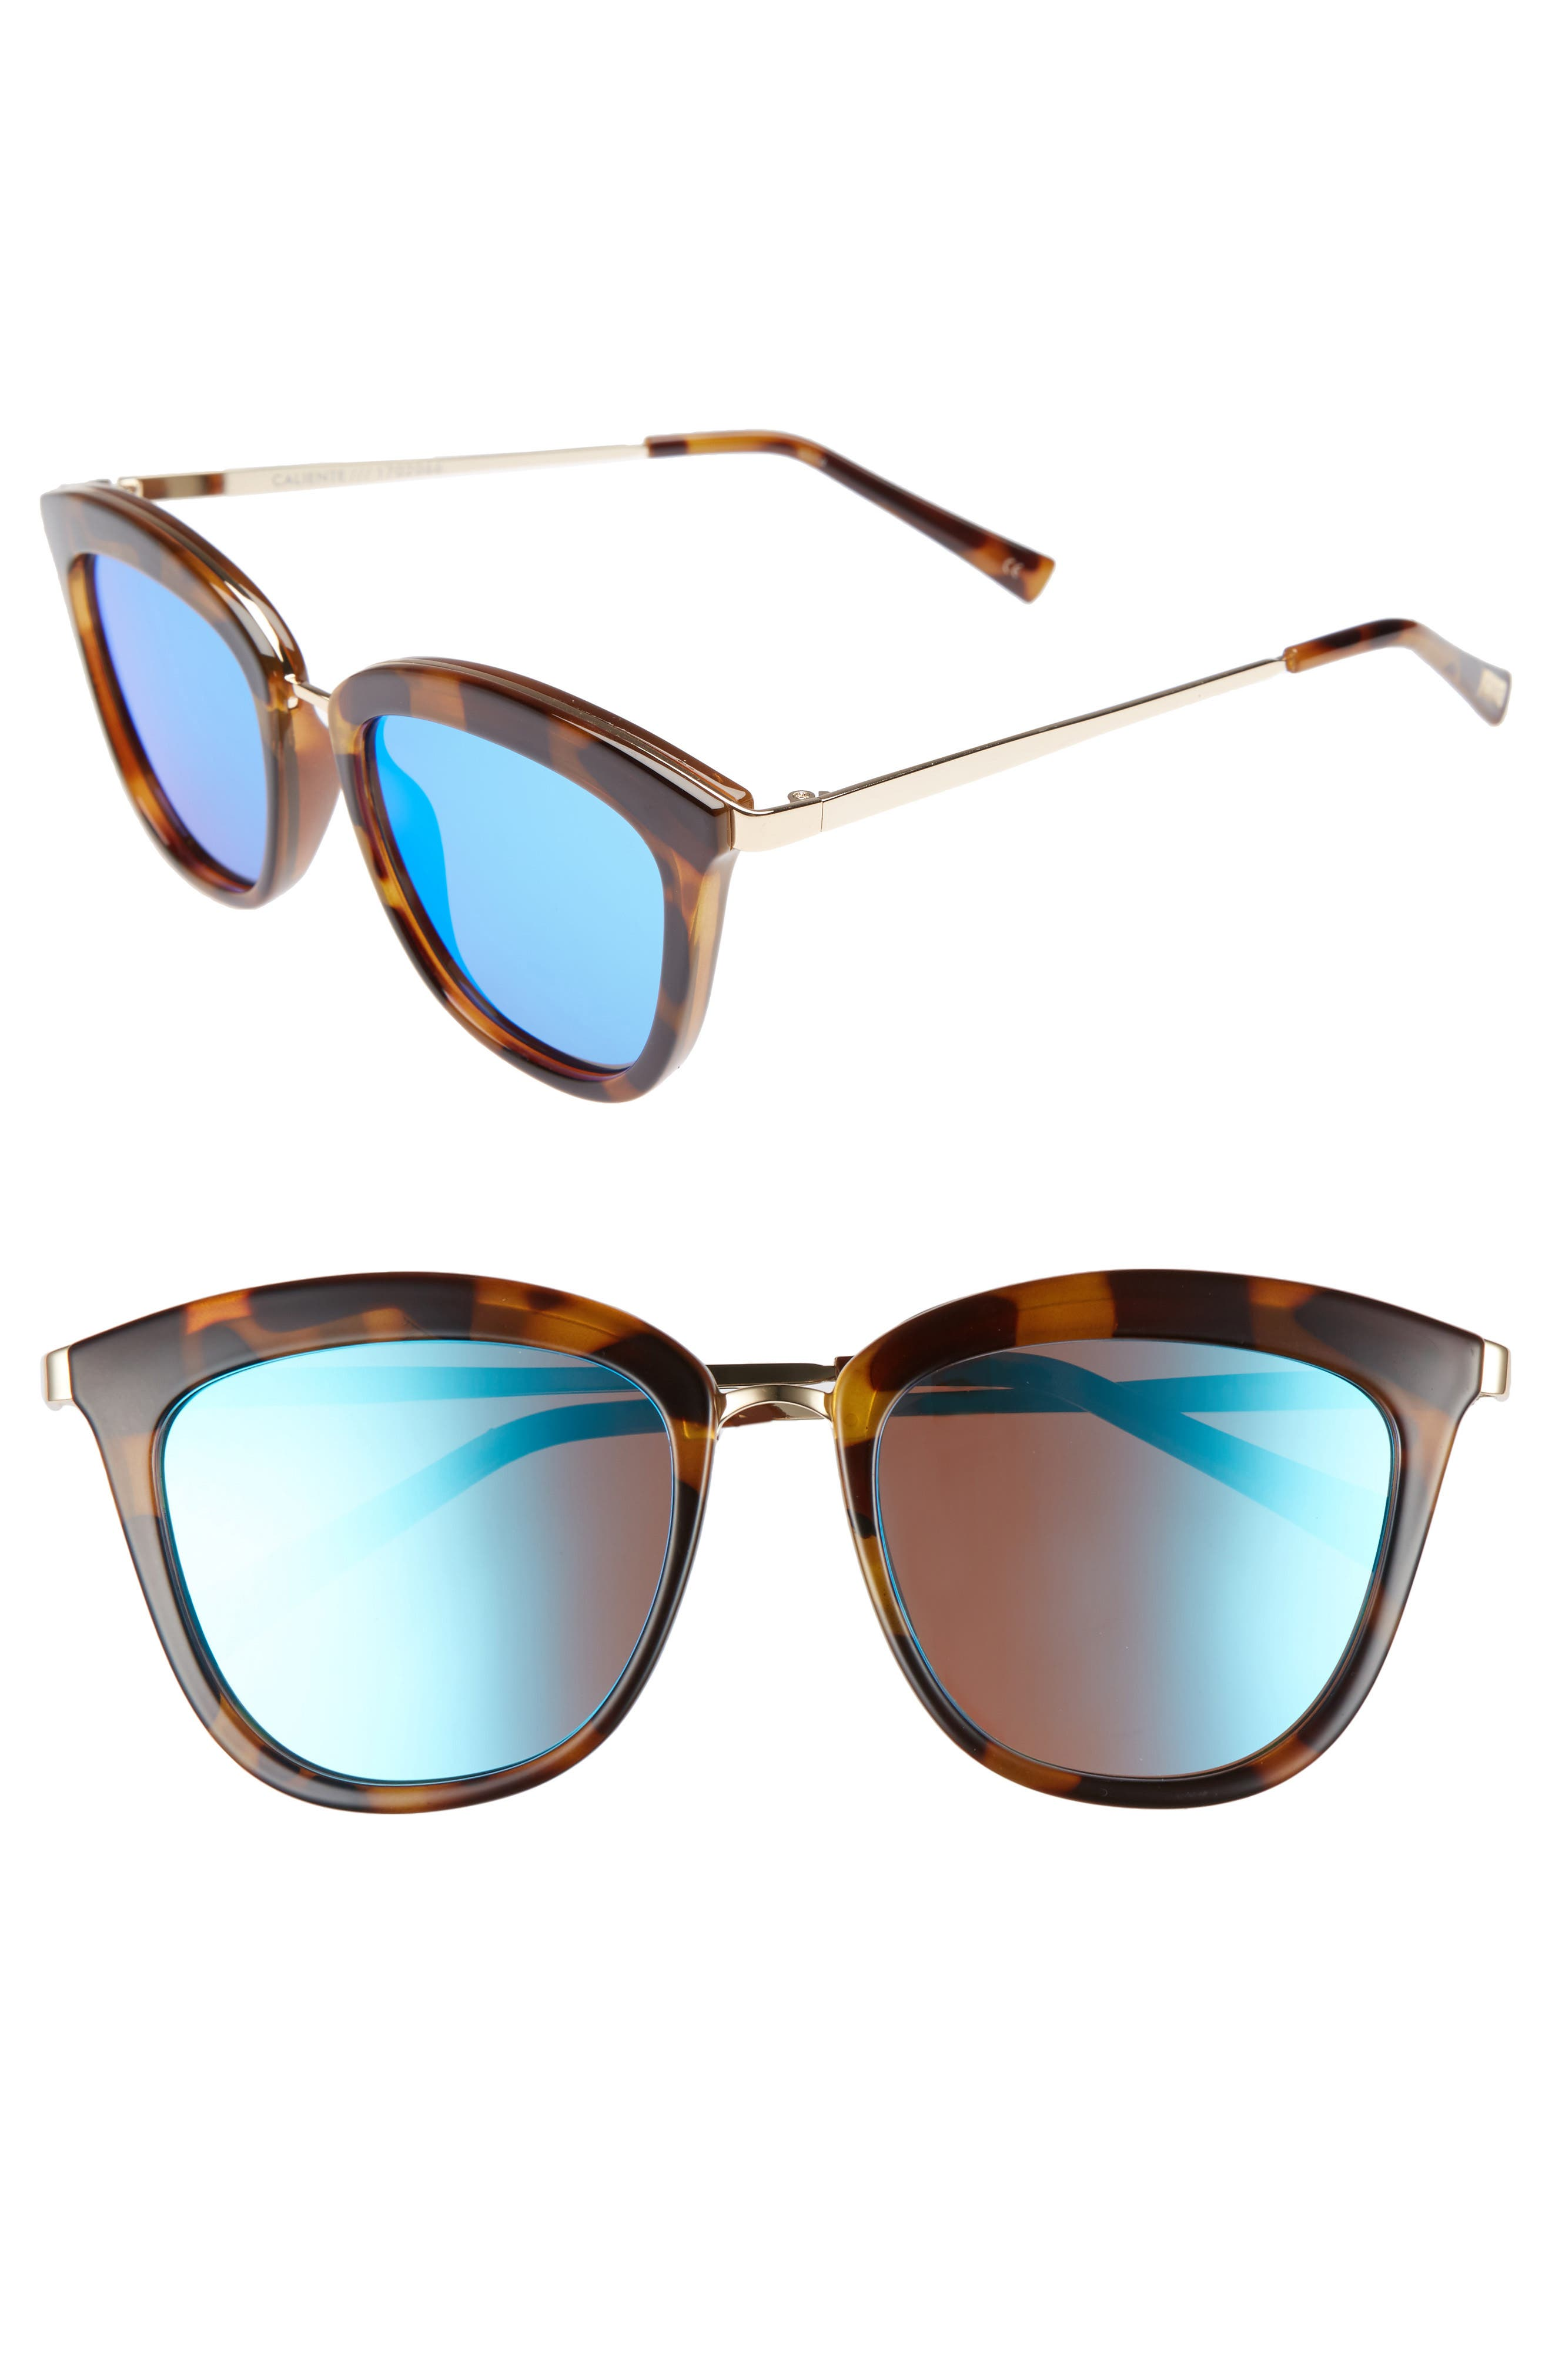 Le Specs Caliente 52mm Cat Eye Sunglasses (Nordstrom Exclusive)